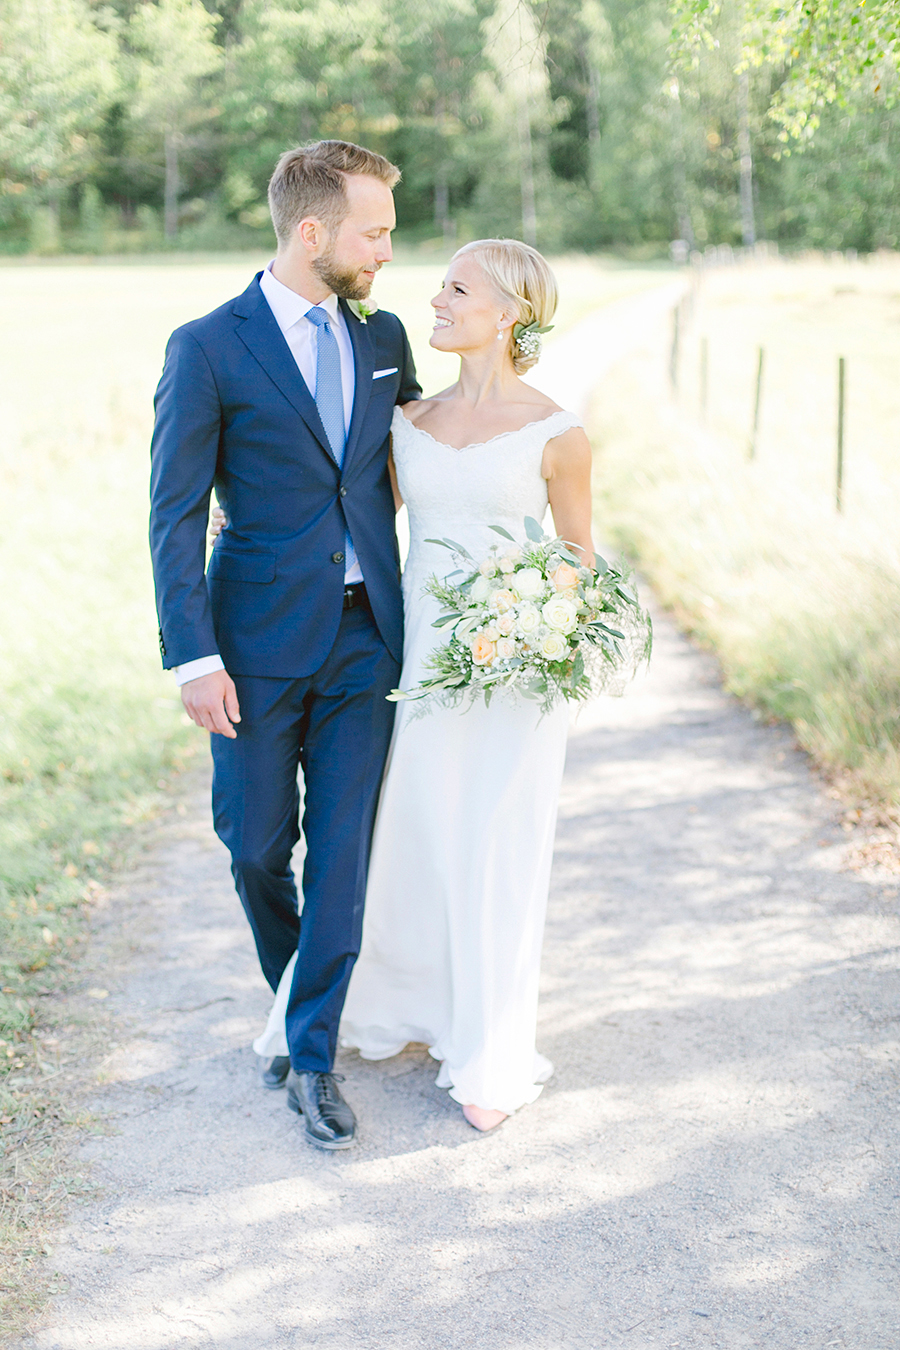 rebeccahansson.com-wedding-Elin-and-Peder-august-13th-2016-(231).jpg